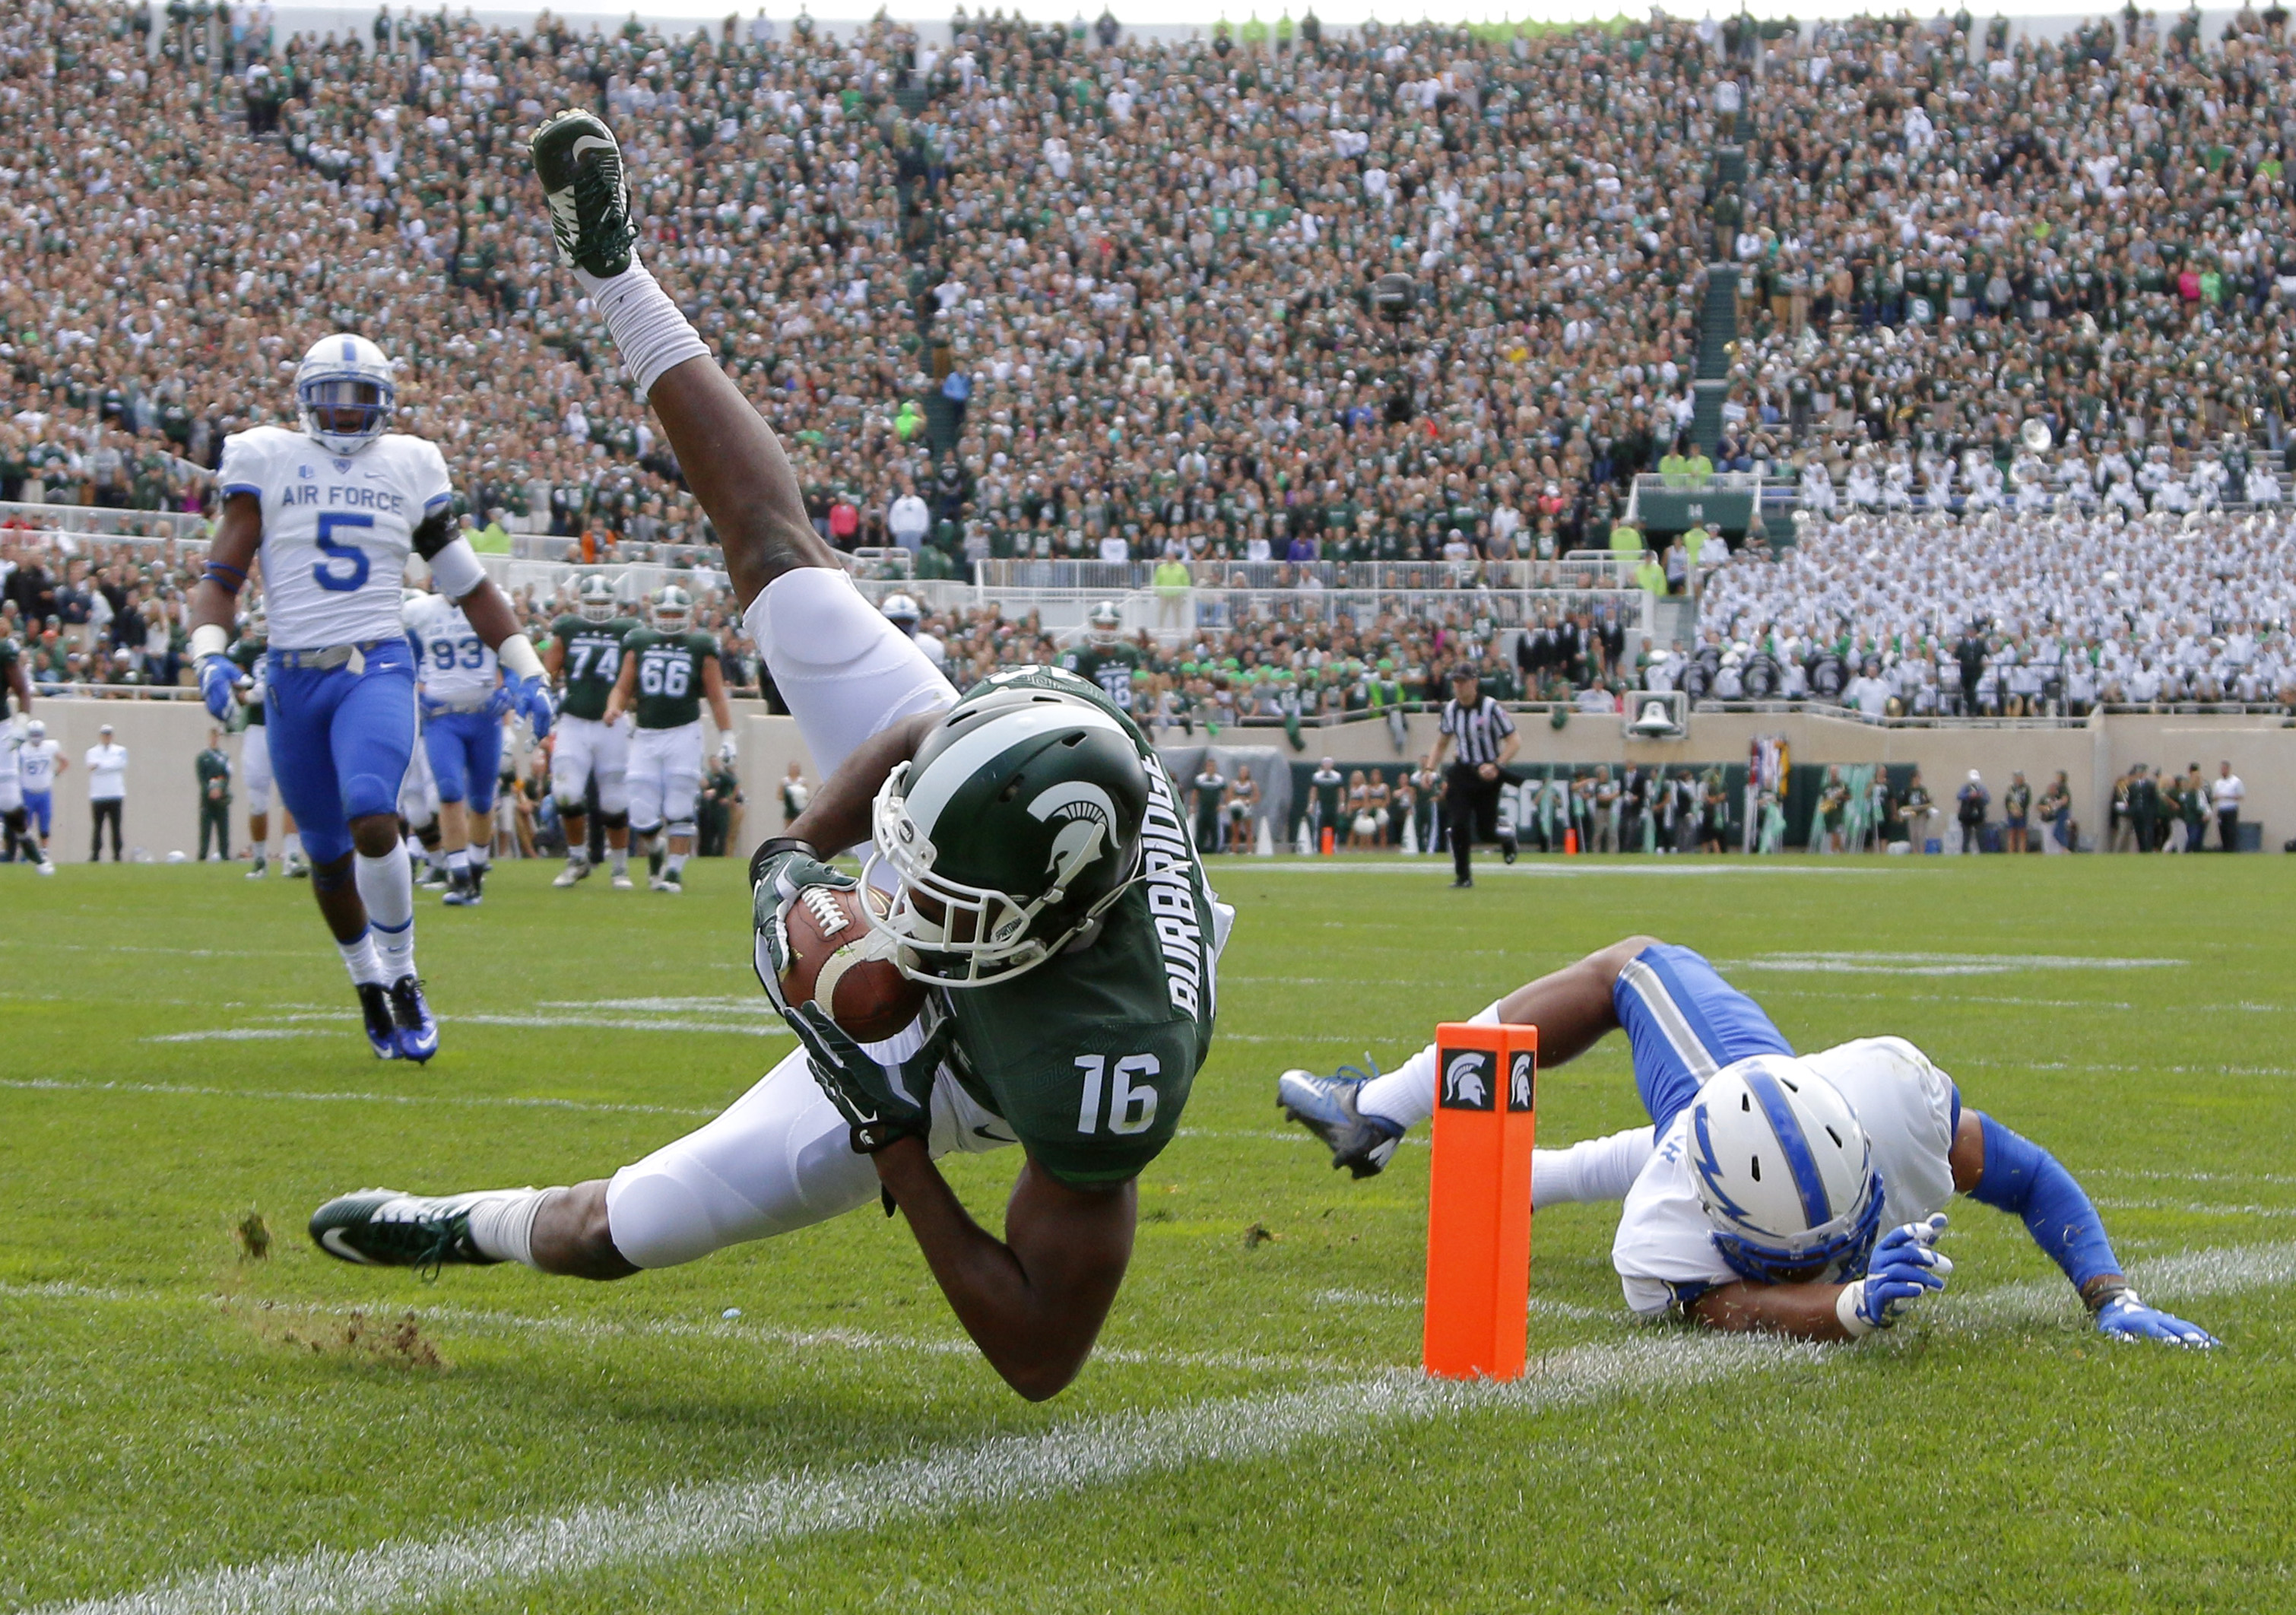 Michigan State's Aaron Burbridge (16) comes down with a reception for a touchdown against Air Force's Kalon Baker, right, and Dexter Walker (5) during an NCAA college football game, Saturday, Sept. 19, 2015, in East Lansing, Mich. (AP Photo/Al Goldis)